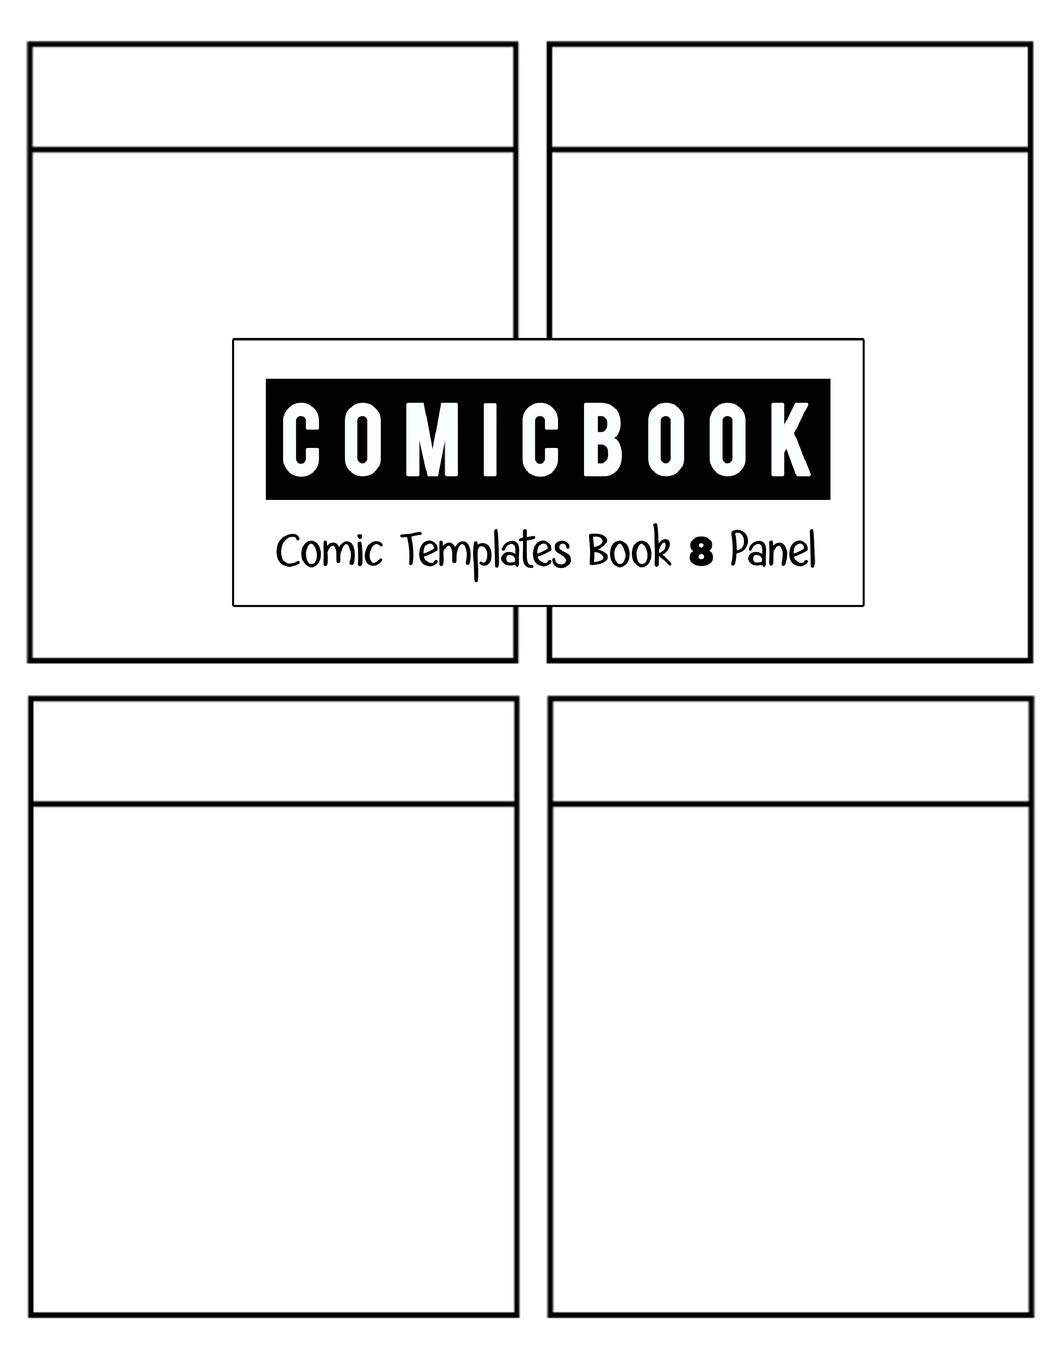 Comic Book 8 Panel: Templates Comic Blank Book Panel Strip, Comic Book Drawing, Design Sketchbook Journal, Artist's Notebook, Strips Cartoon, Draw Your Own Comics, White Cover, Size 8.5 x 11 Inch PDF